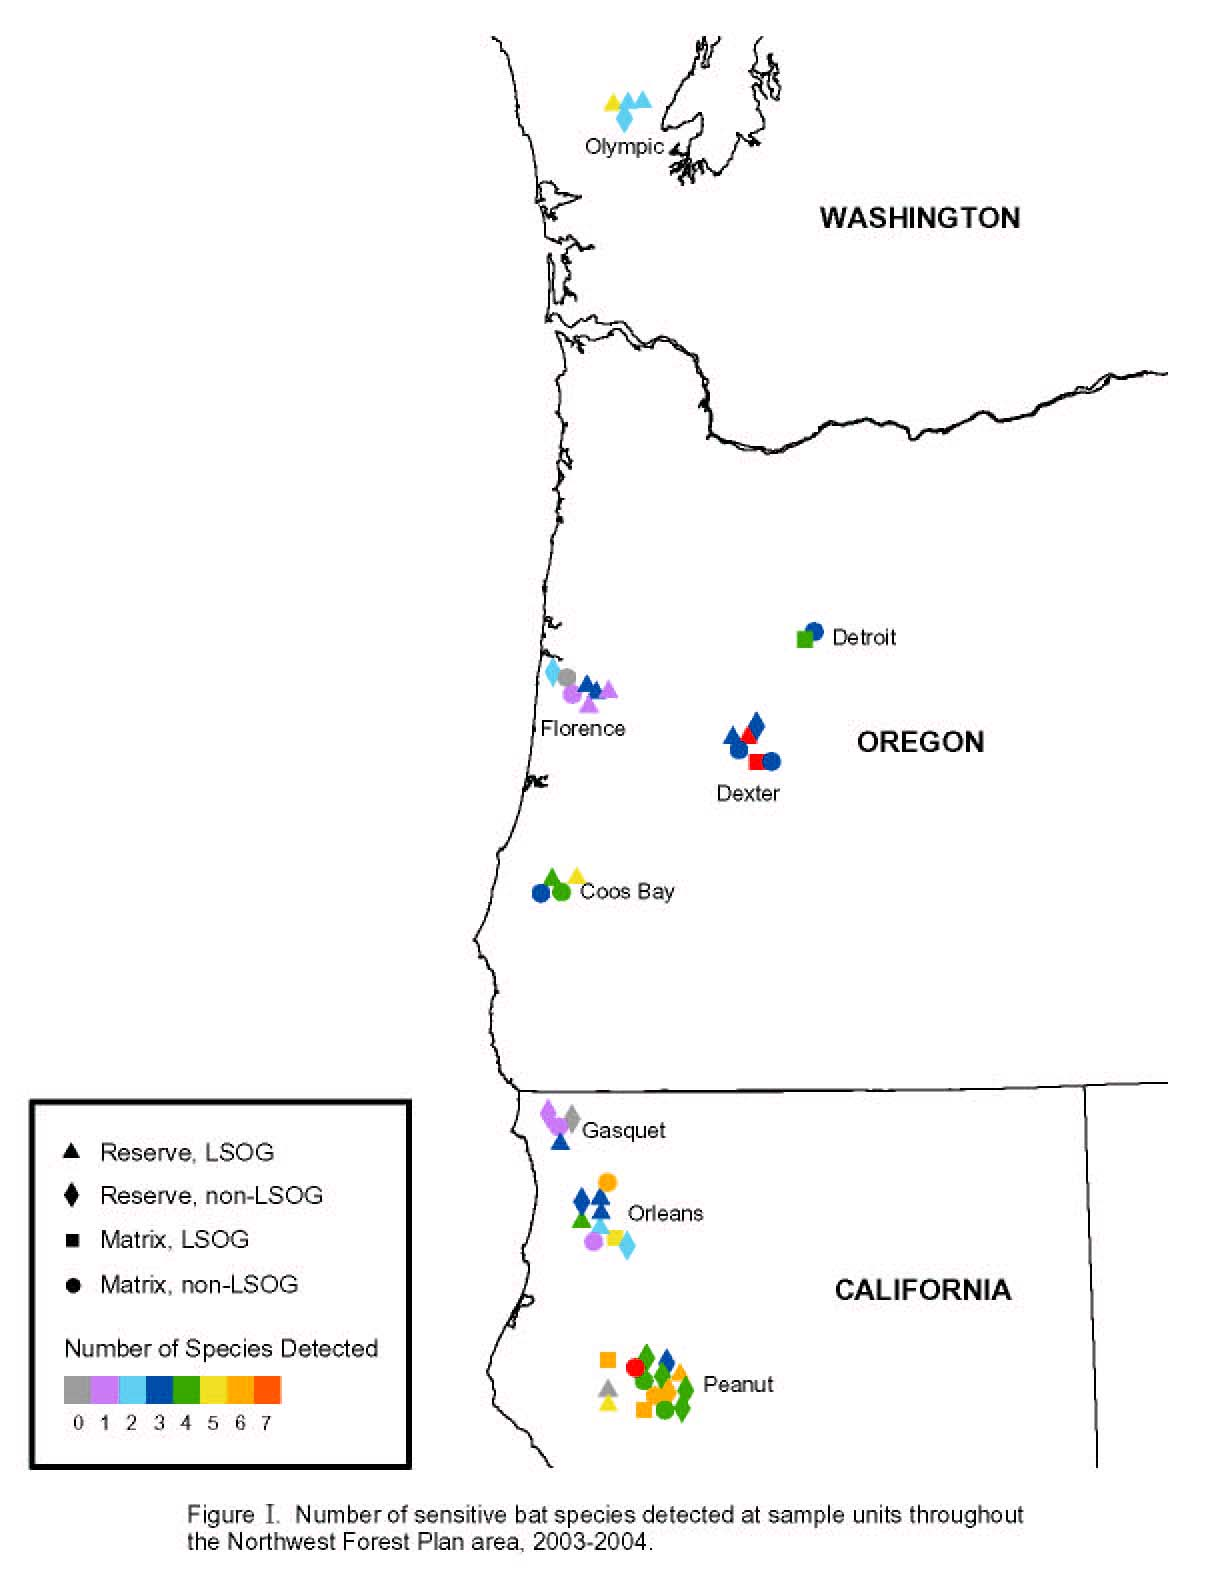 Map by number of bat species detected at sample units throughout the Northwest forest Plan area, 2003-2004